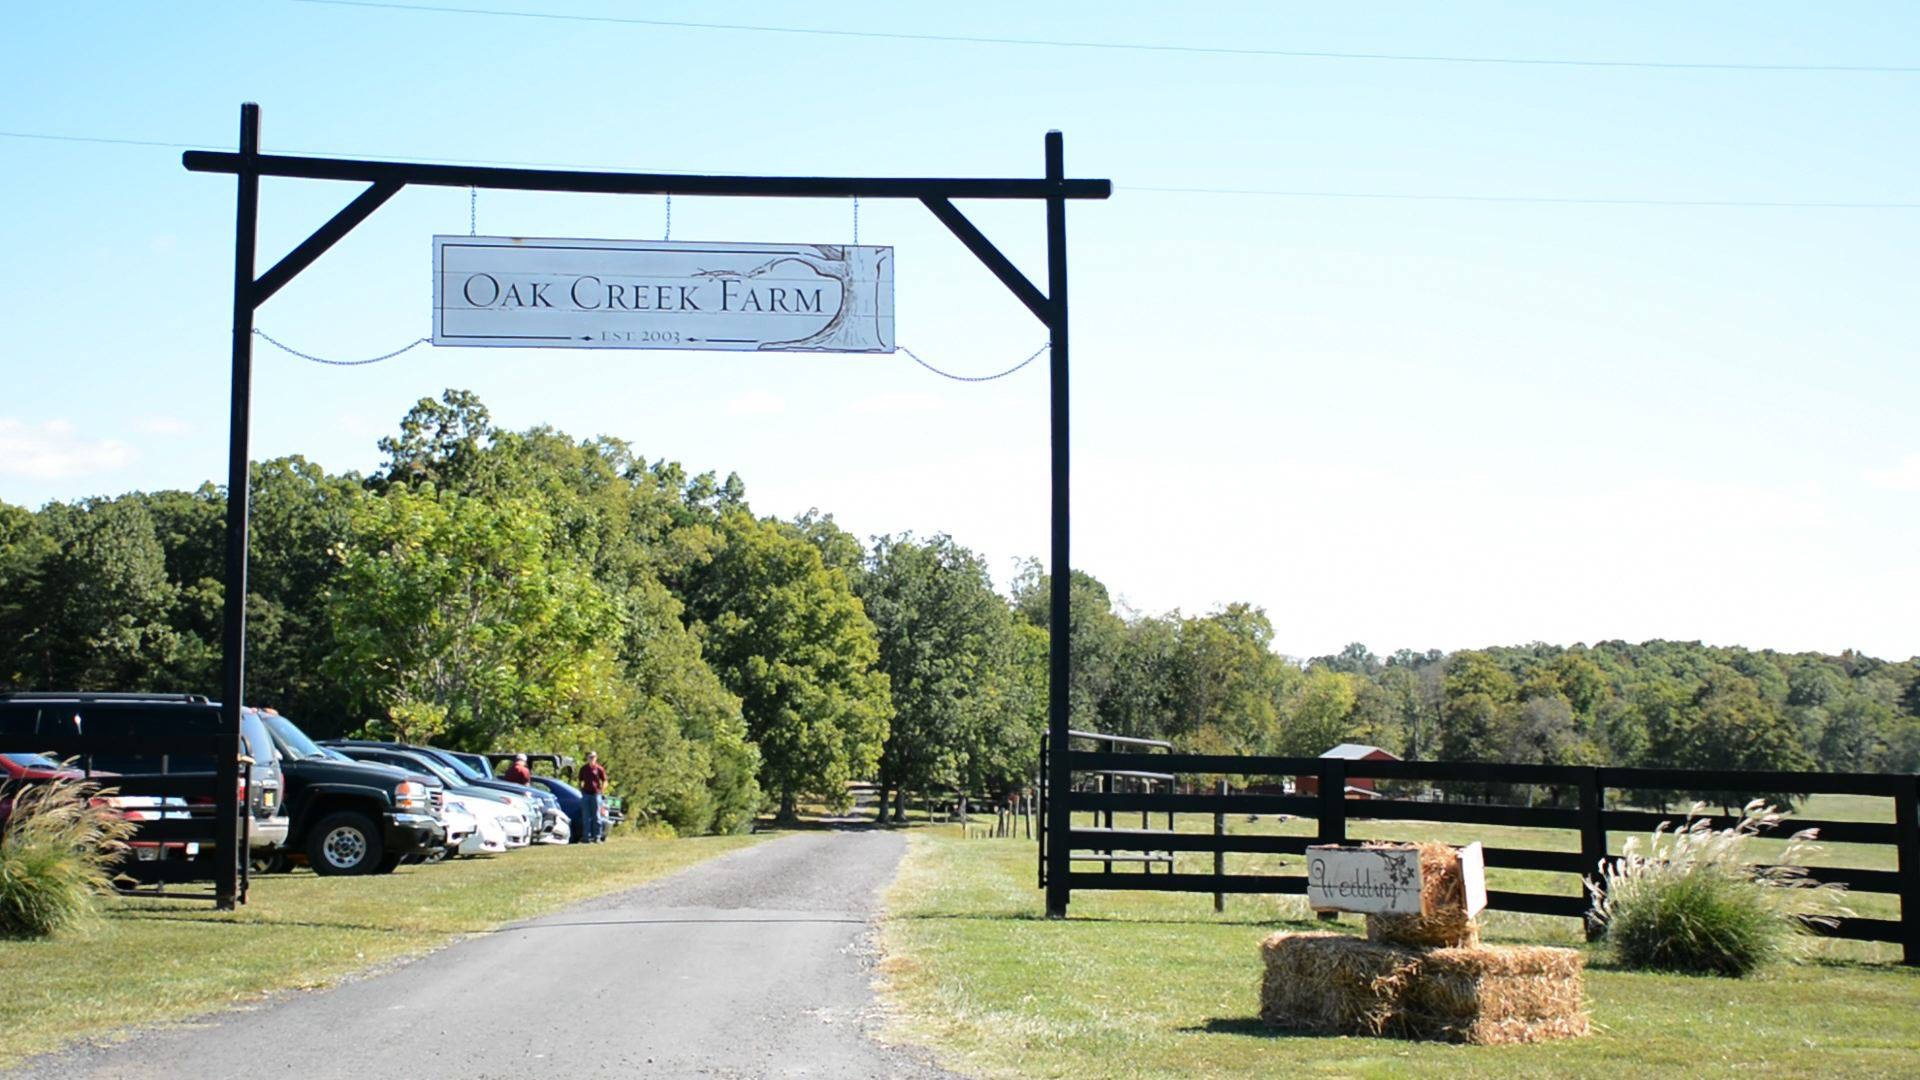 Oak Creek Farm